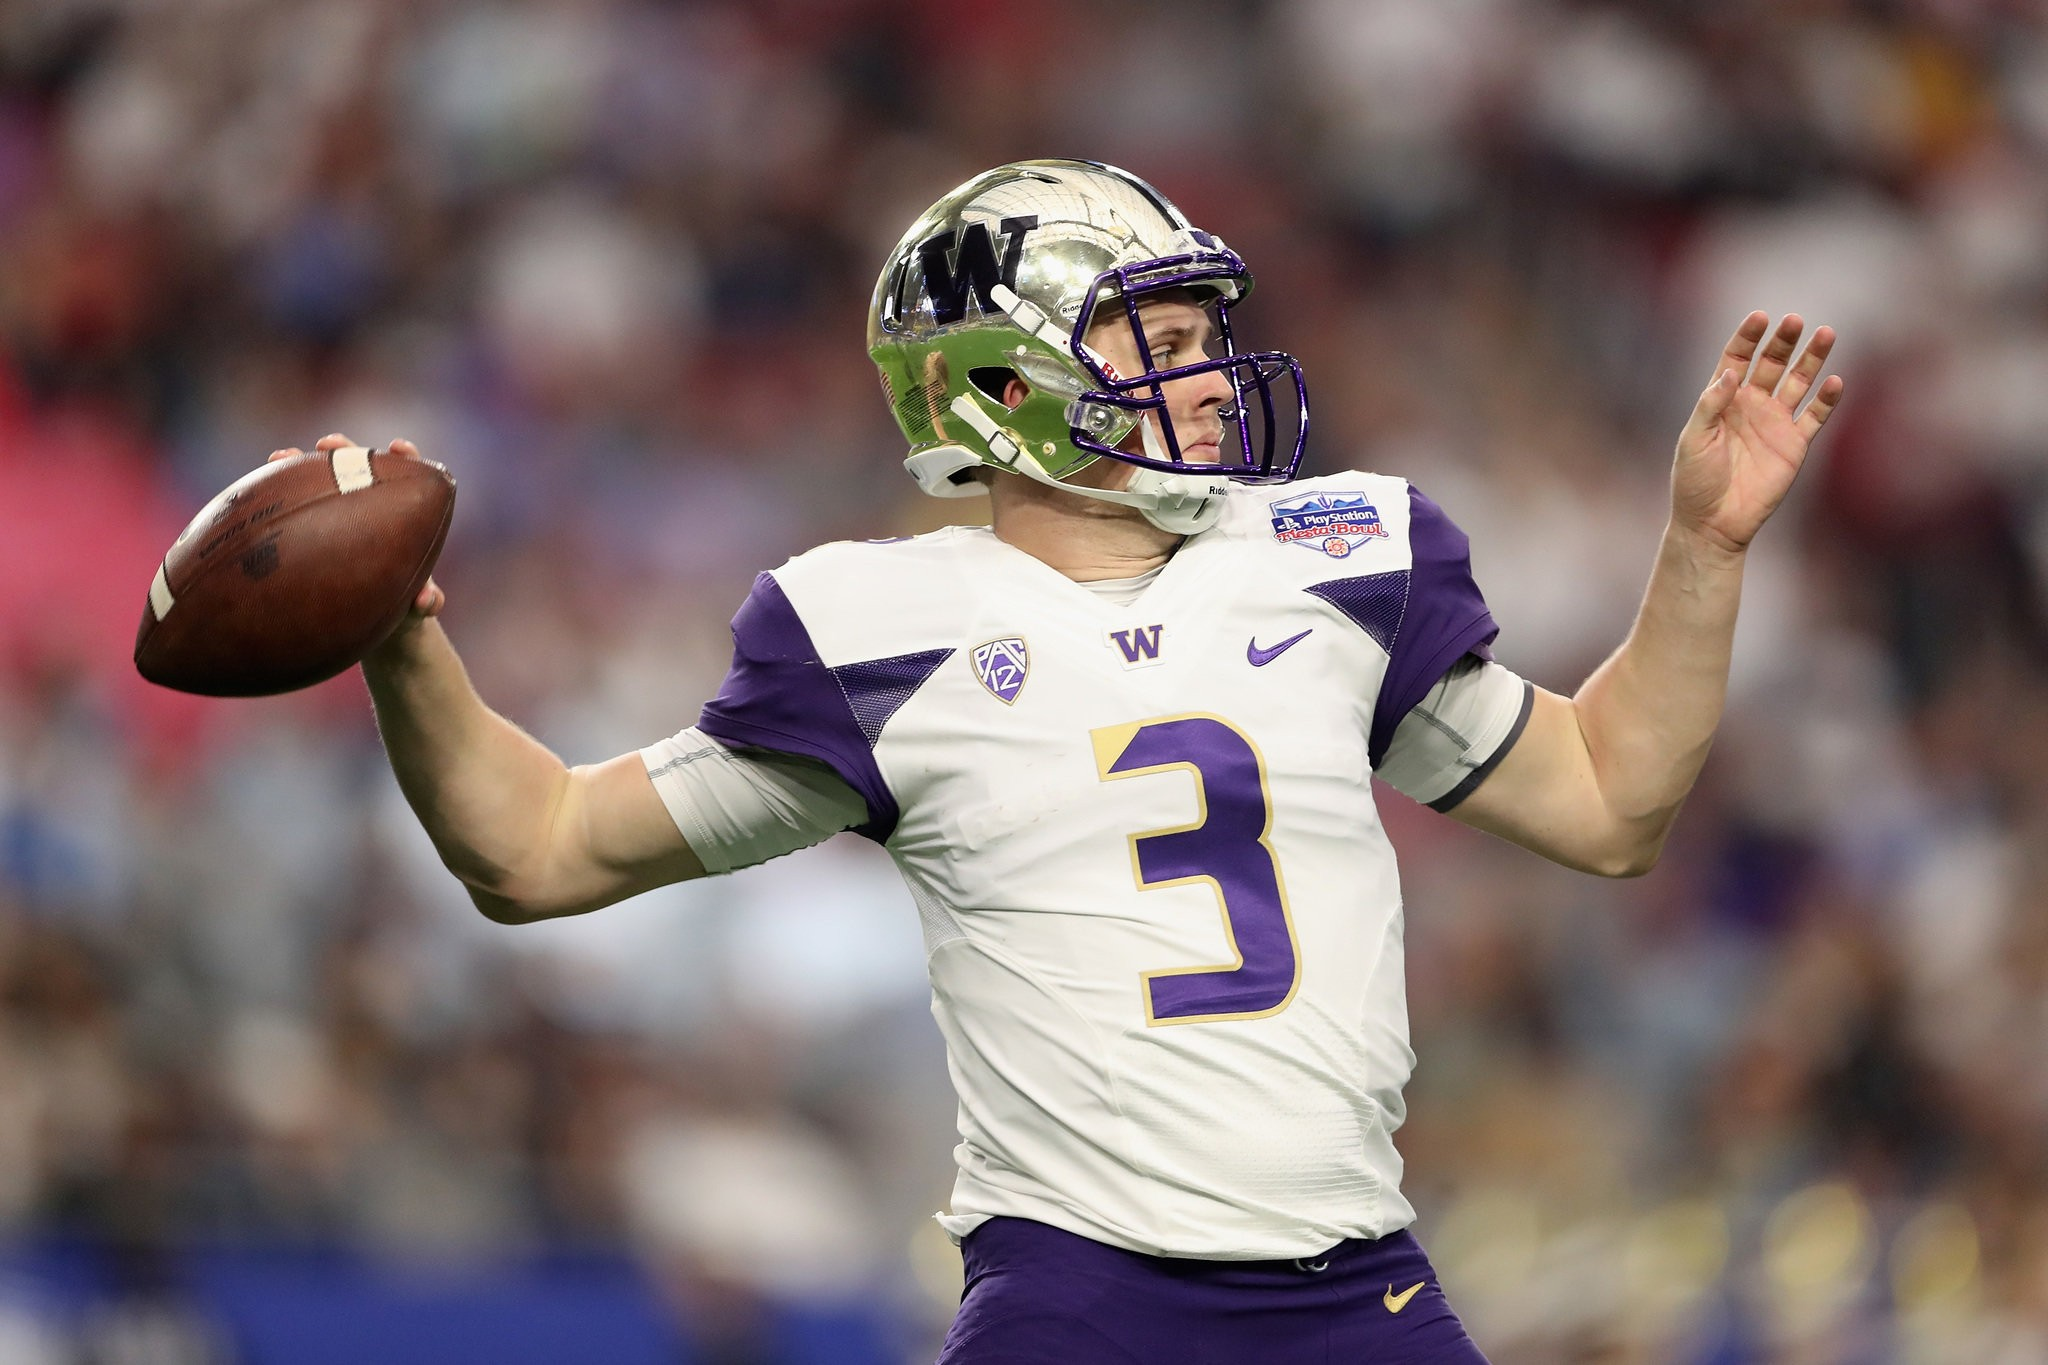 huge selection of a8767 3986b Auburn secondary has big test in Washington's Jake Browning ...